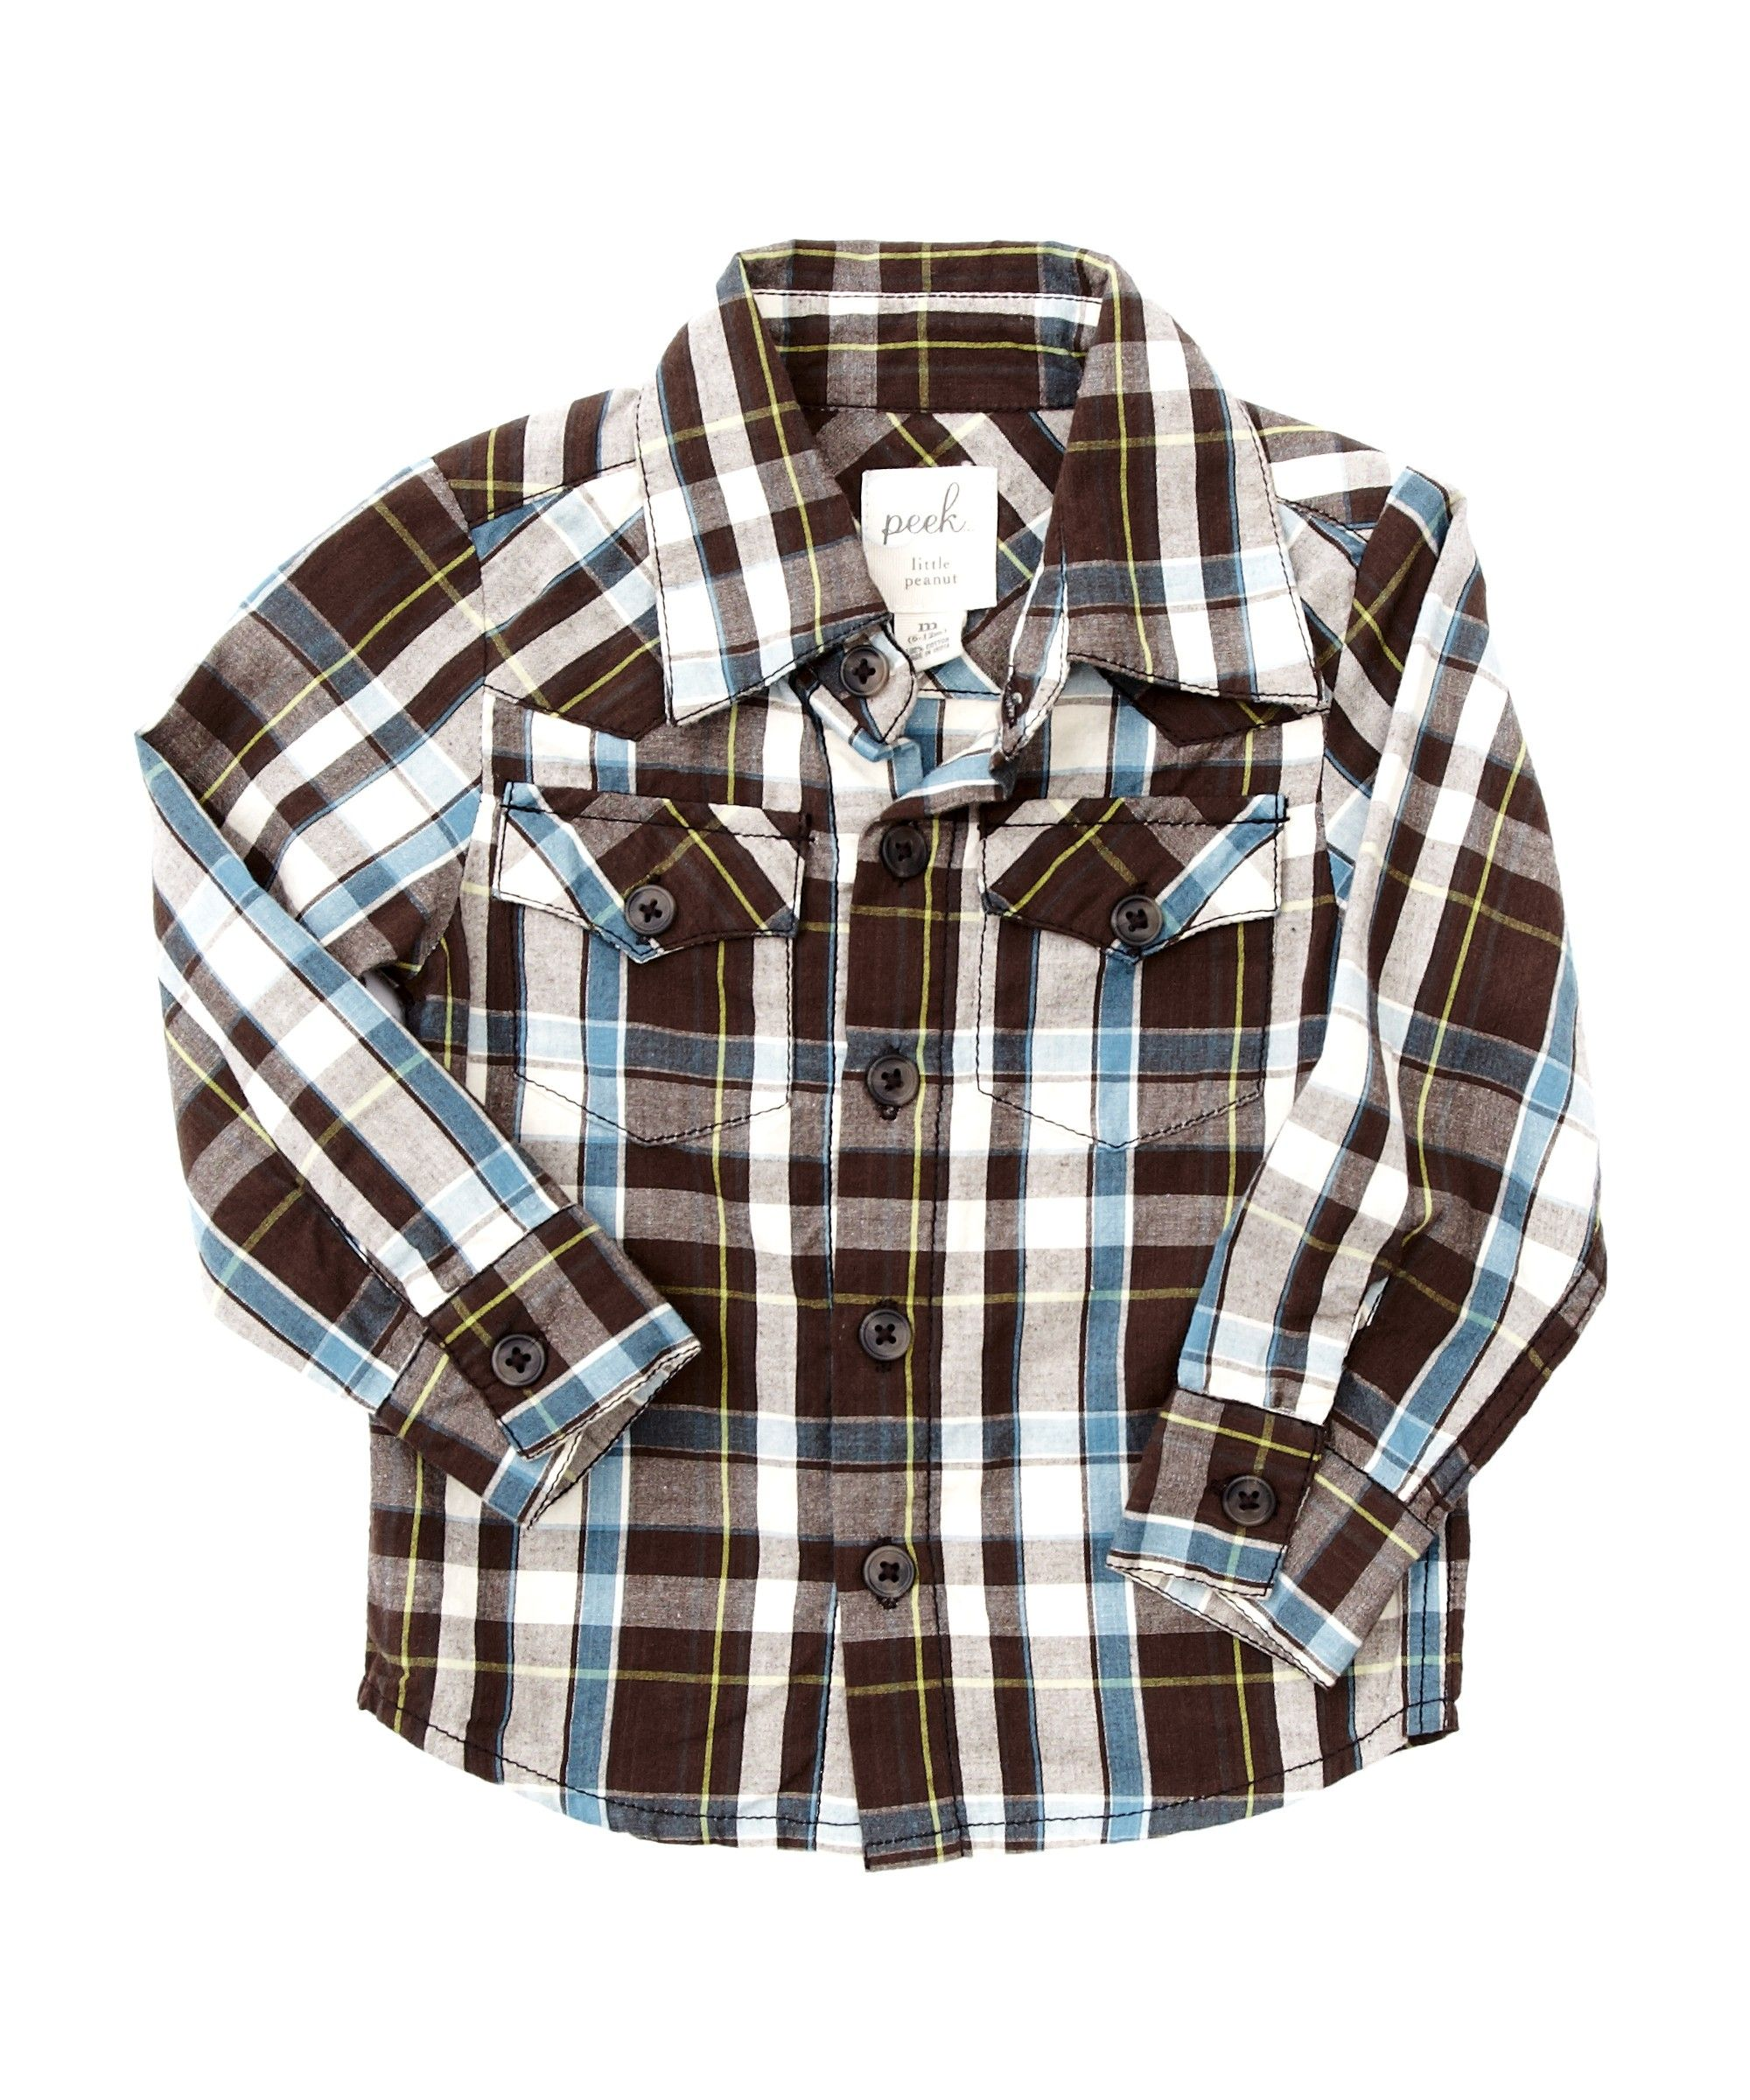 Baby James Western Plaid Shirt Baby Boys Shop sale